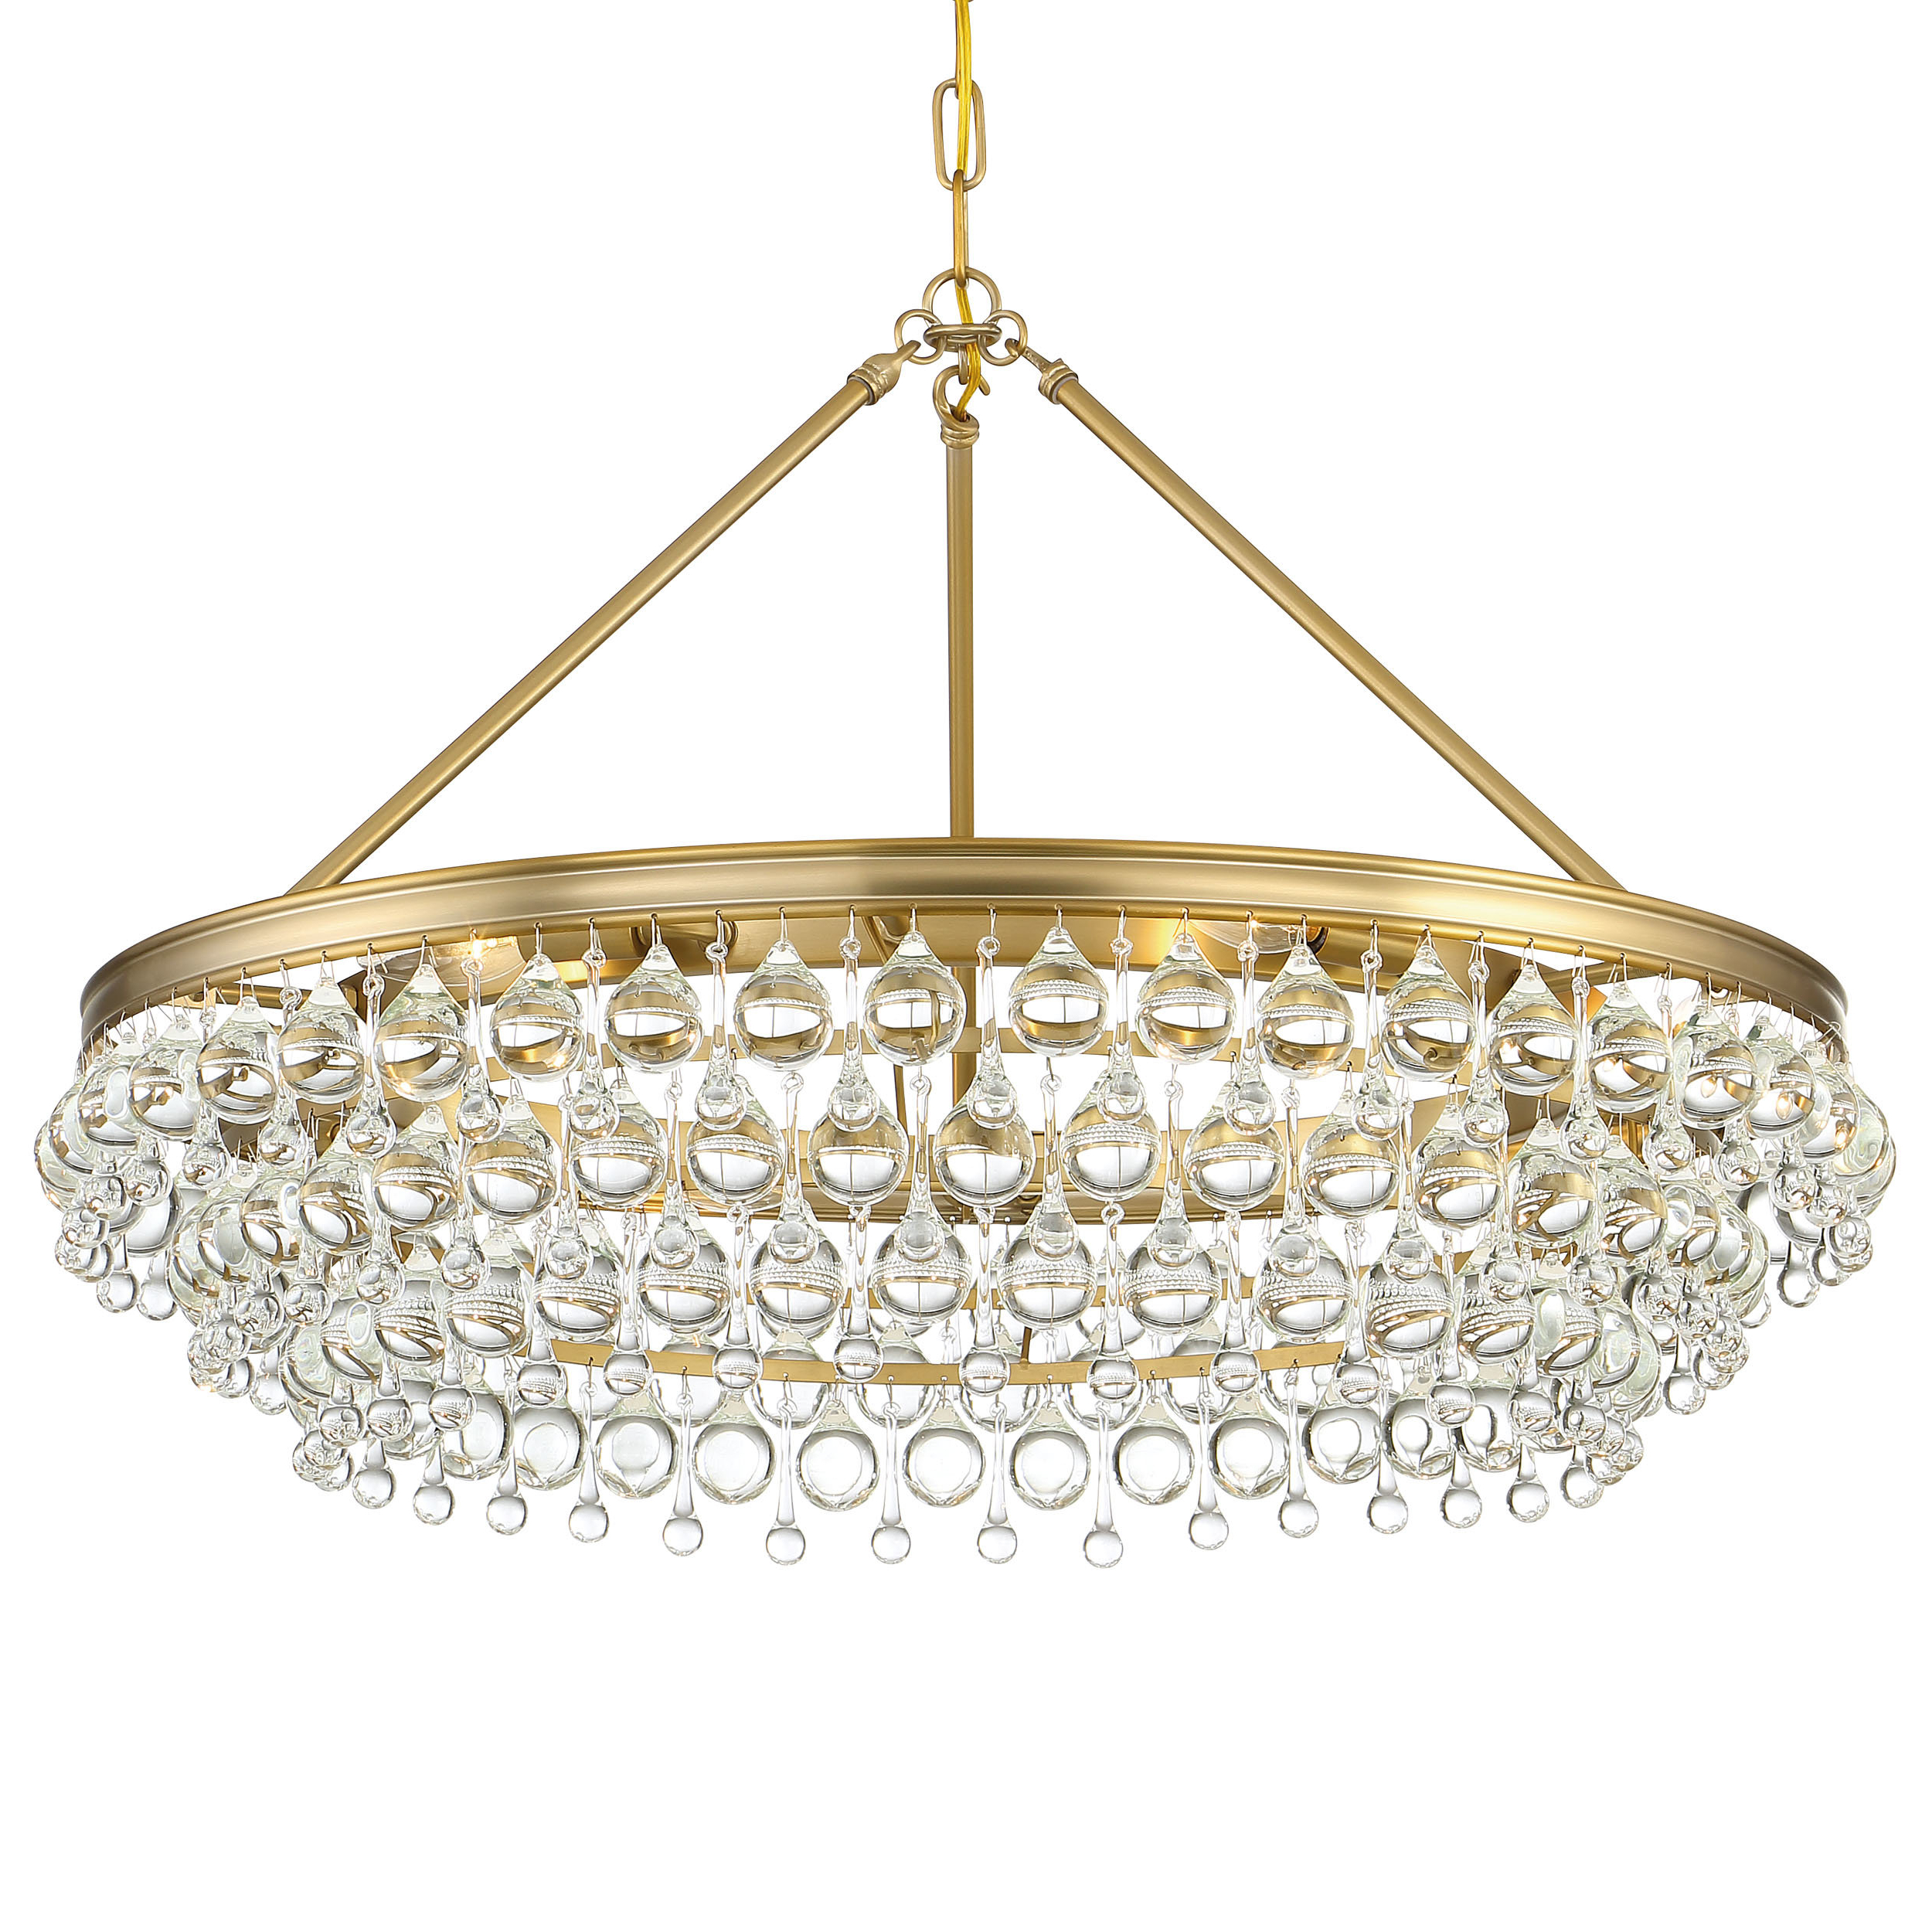 Whyalla 6 Light Crystal Chandelier Pertaining To Best And Newest Bramers 6 Light Novelty Chandeliers (View 7 of 20)